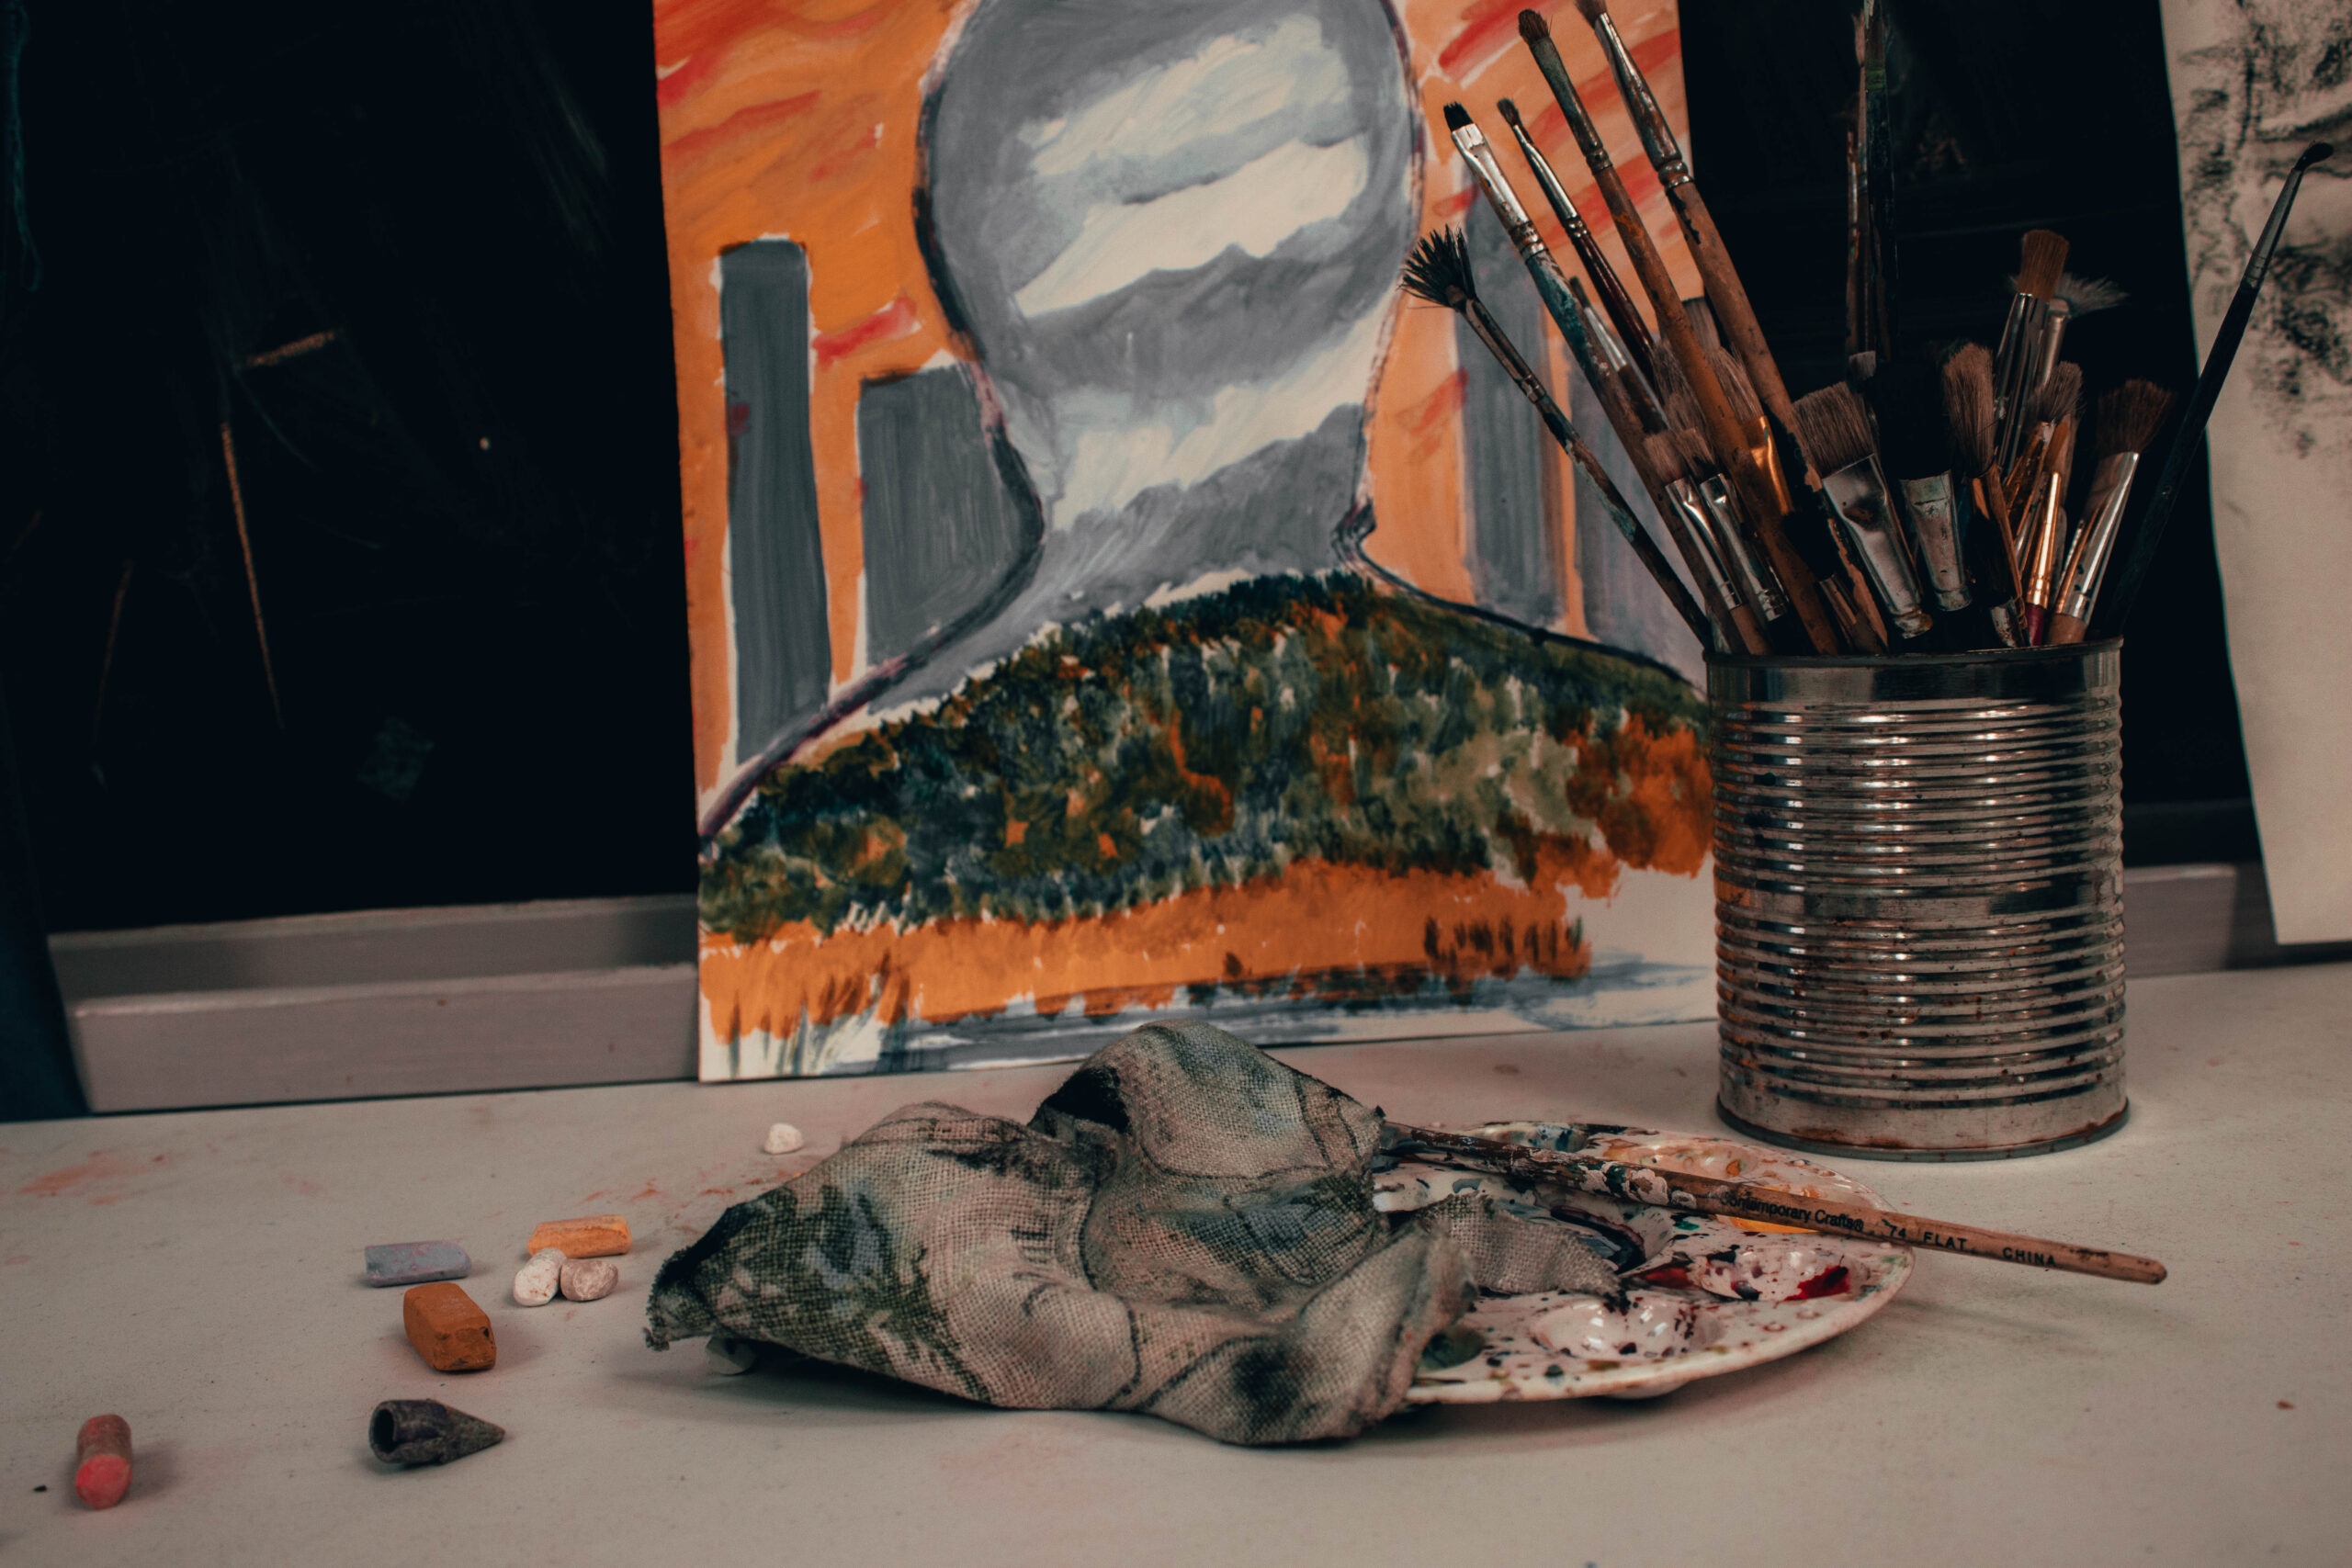 A metal can holding brushes and a painting is seen behind it